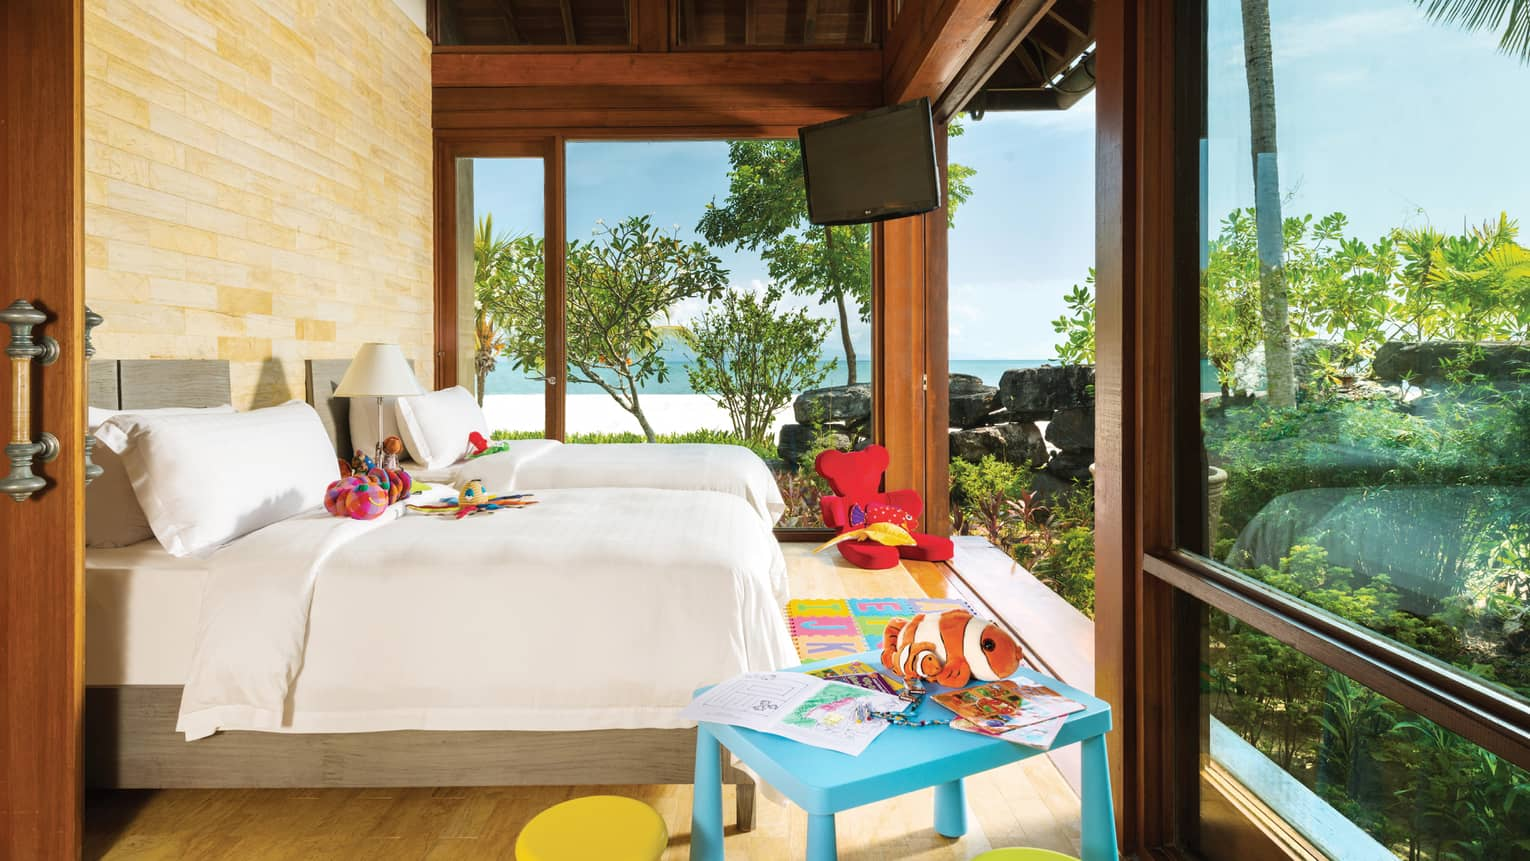 Family Beach Villa bedroom, double beds with child's toys, craft table, red bear chair